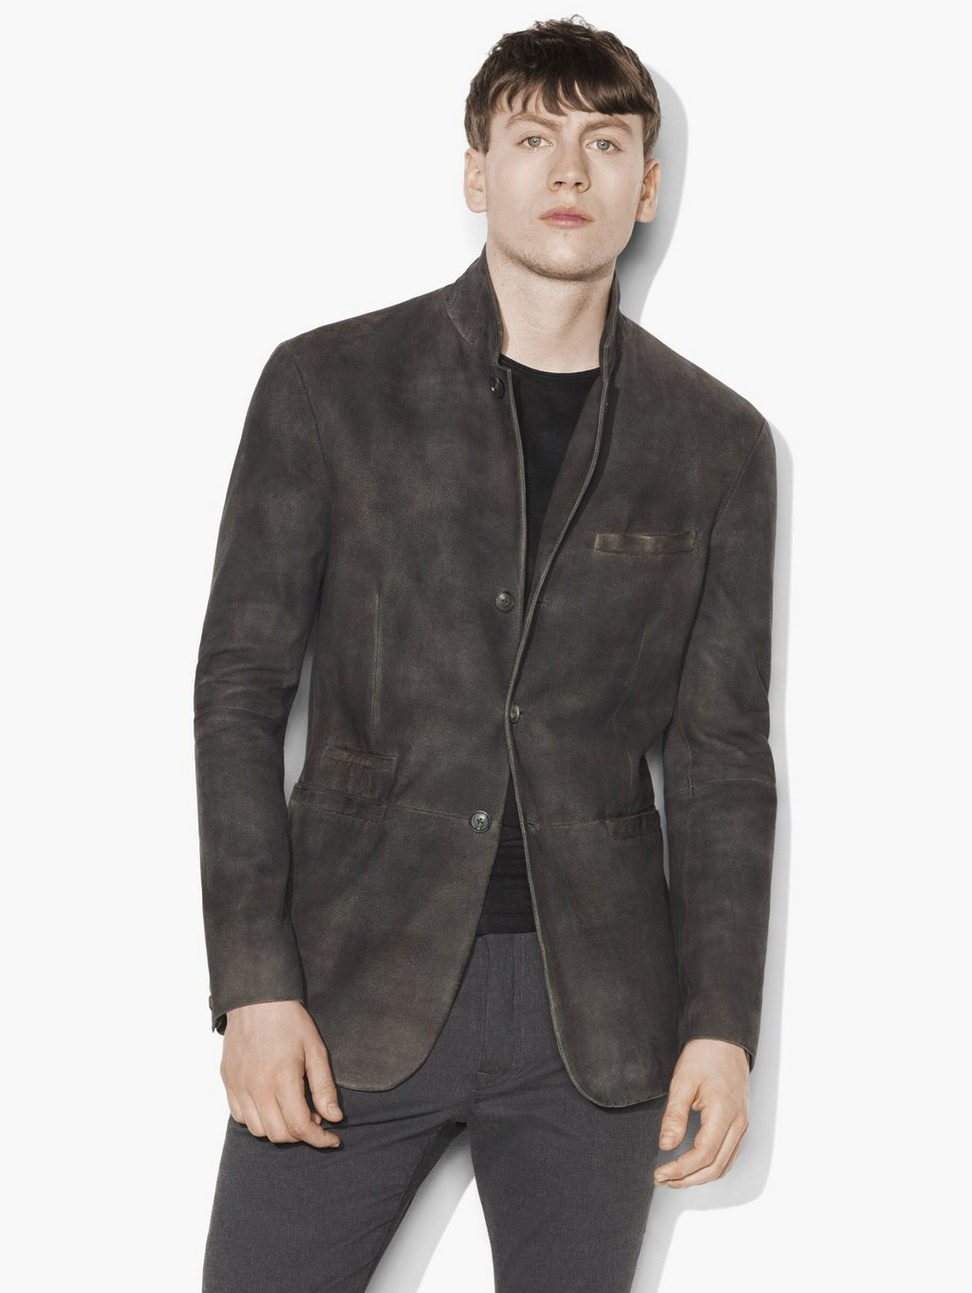 Burnished-Suede-Blazer.jpg